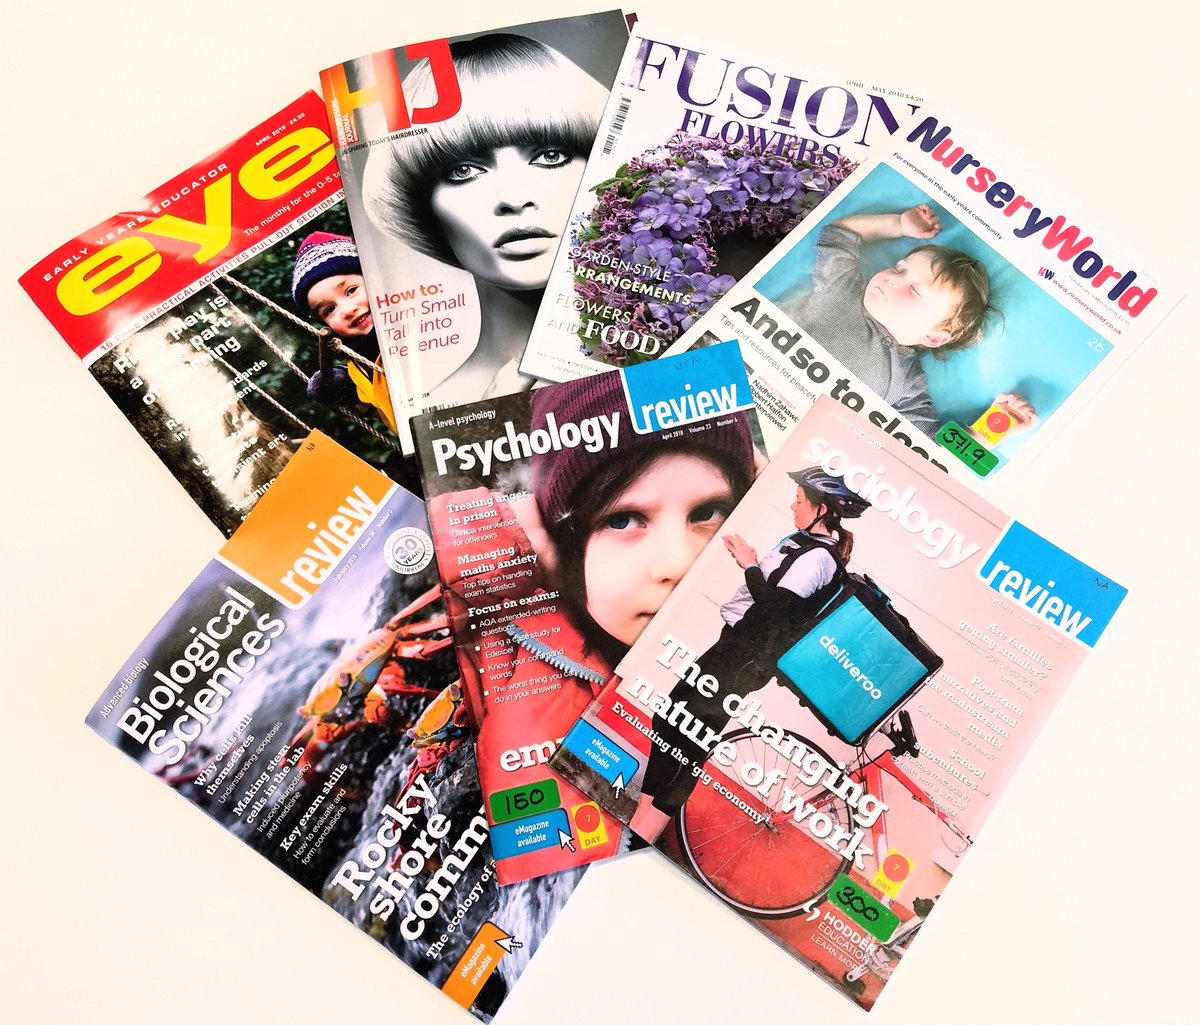 In addition to our wide collection of subject related e-journals, we also hold print journals across a range of subjects. These are available to all of our staff/students &amp; may be loaned for 1 week. They may also be renewed subject to recall. #nrclibraries #journals #magazines<br>http://pic.twitter.com/zSpBspLiJz